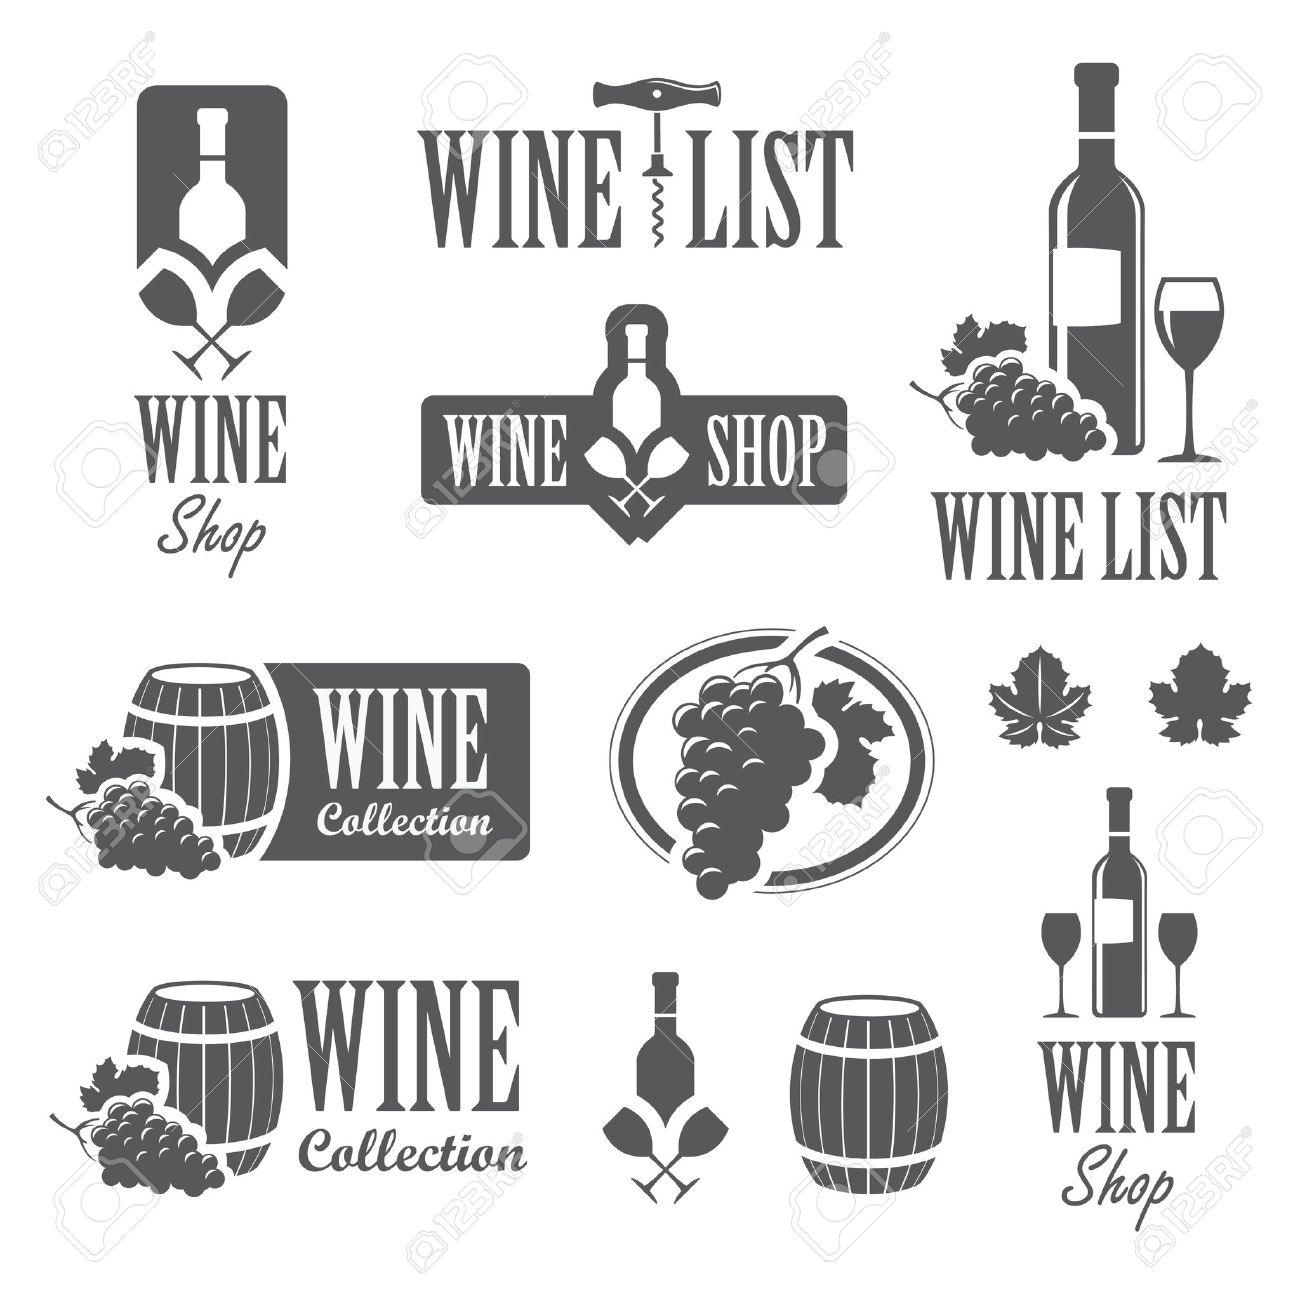 Set of wine signs, badges and labels - 57900707